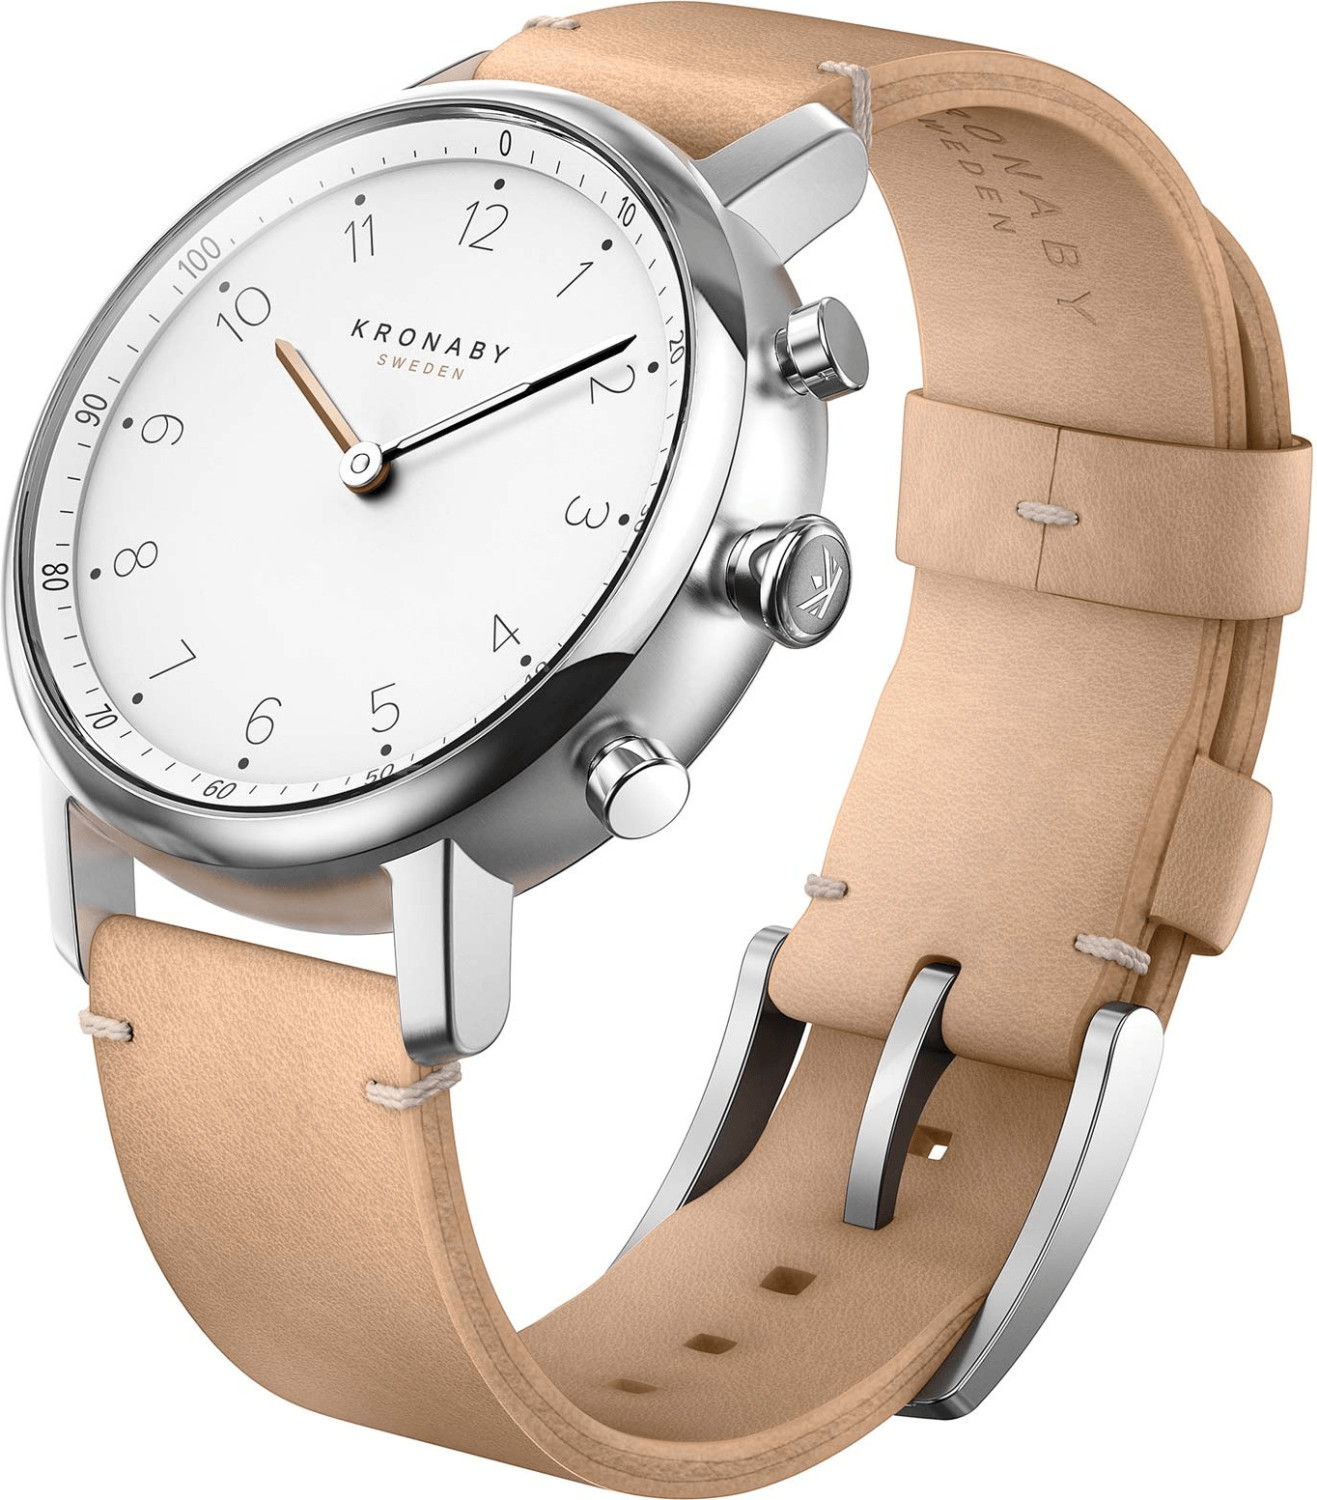 Image of Kronaby Nord beige Leather Strap